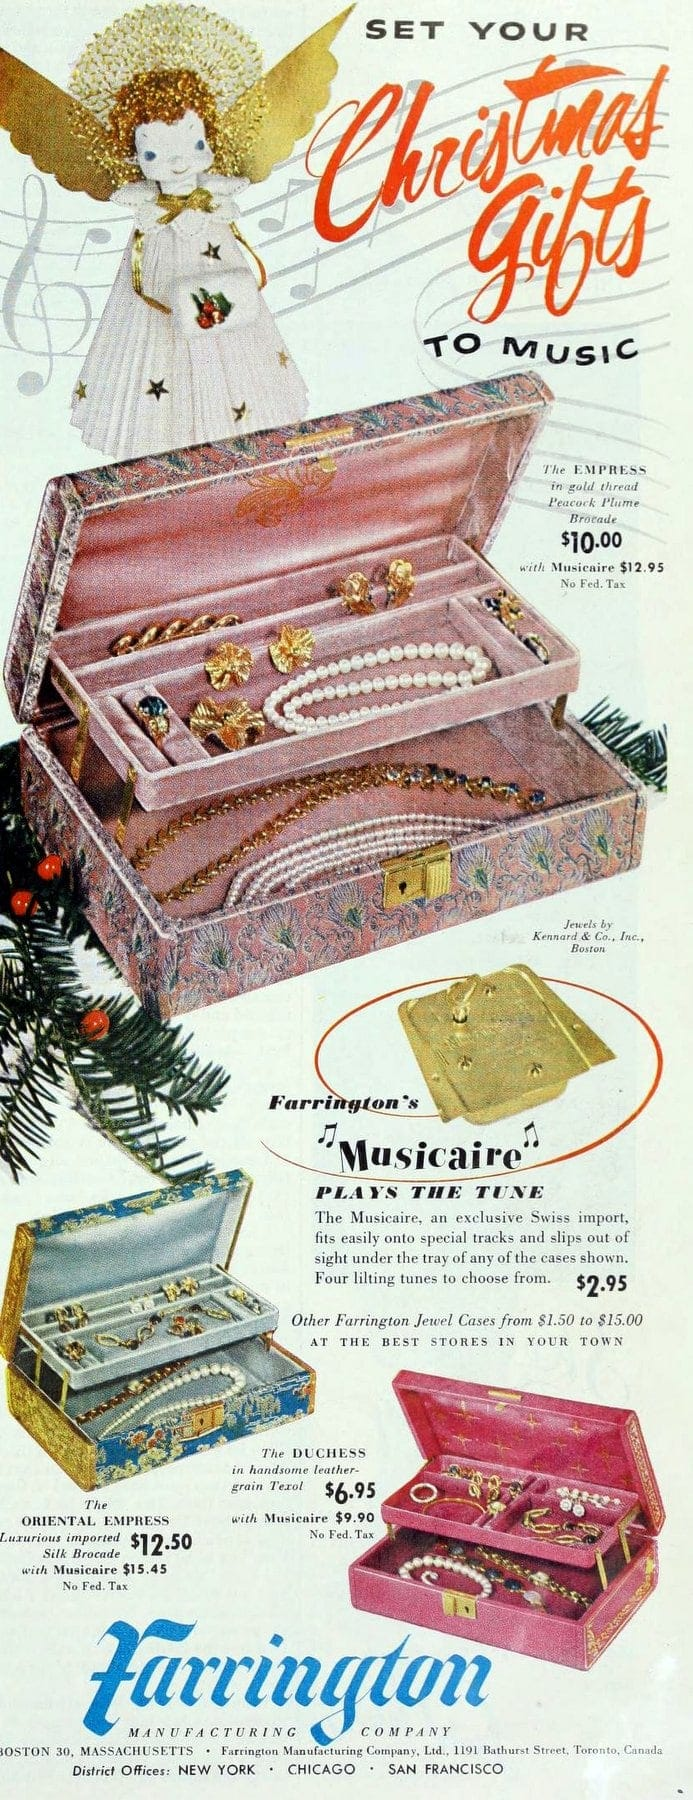 Retro Farrington jewelry boxes for women and girls from 1952